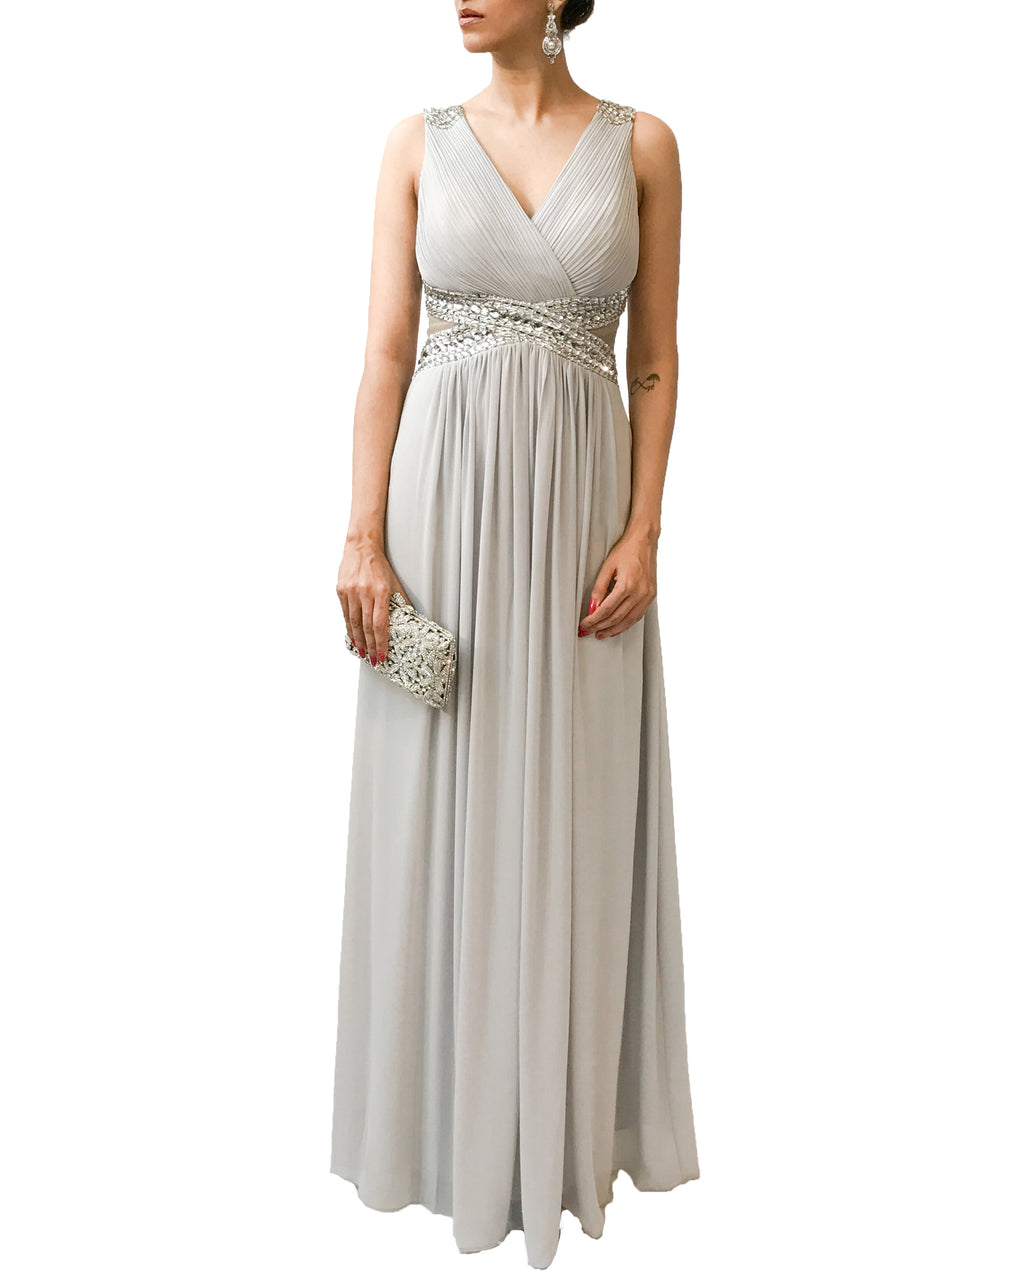 Embellished Shine V Neck Dress - Vestito - Covetella Dress Rentals